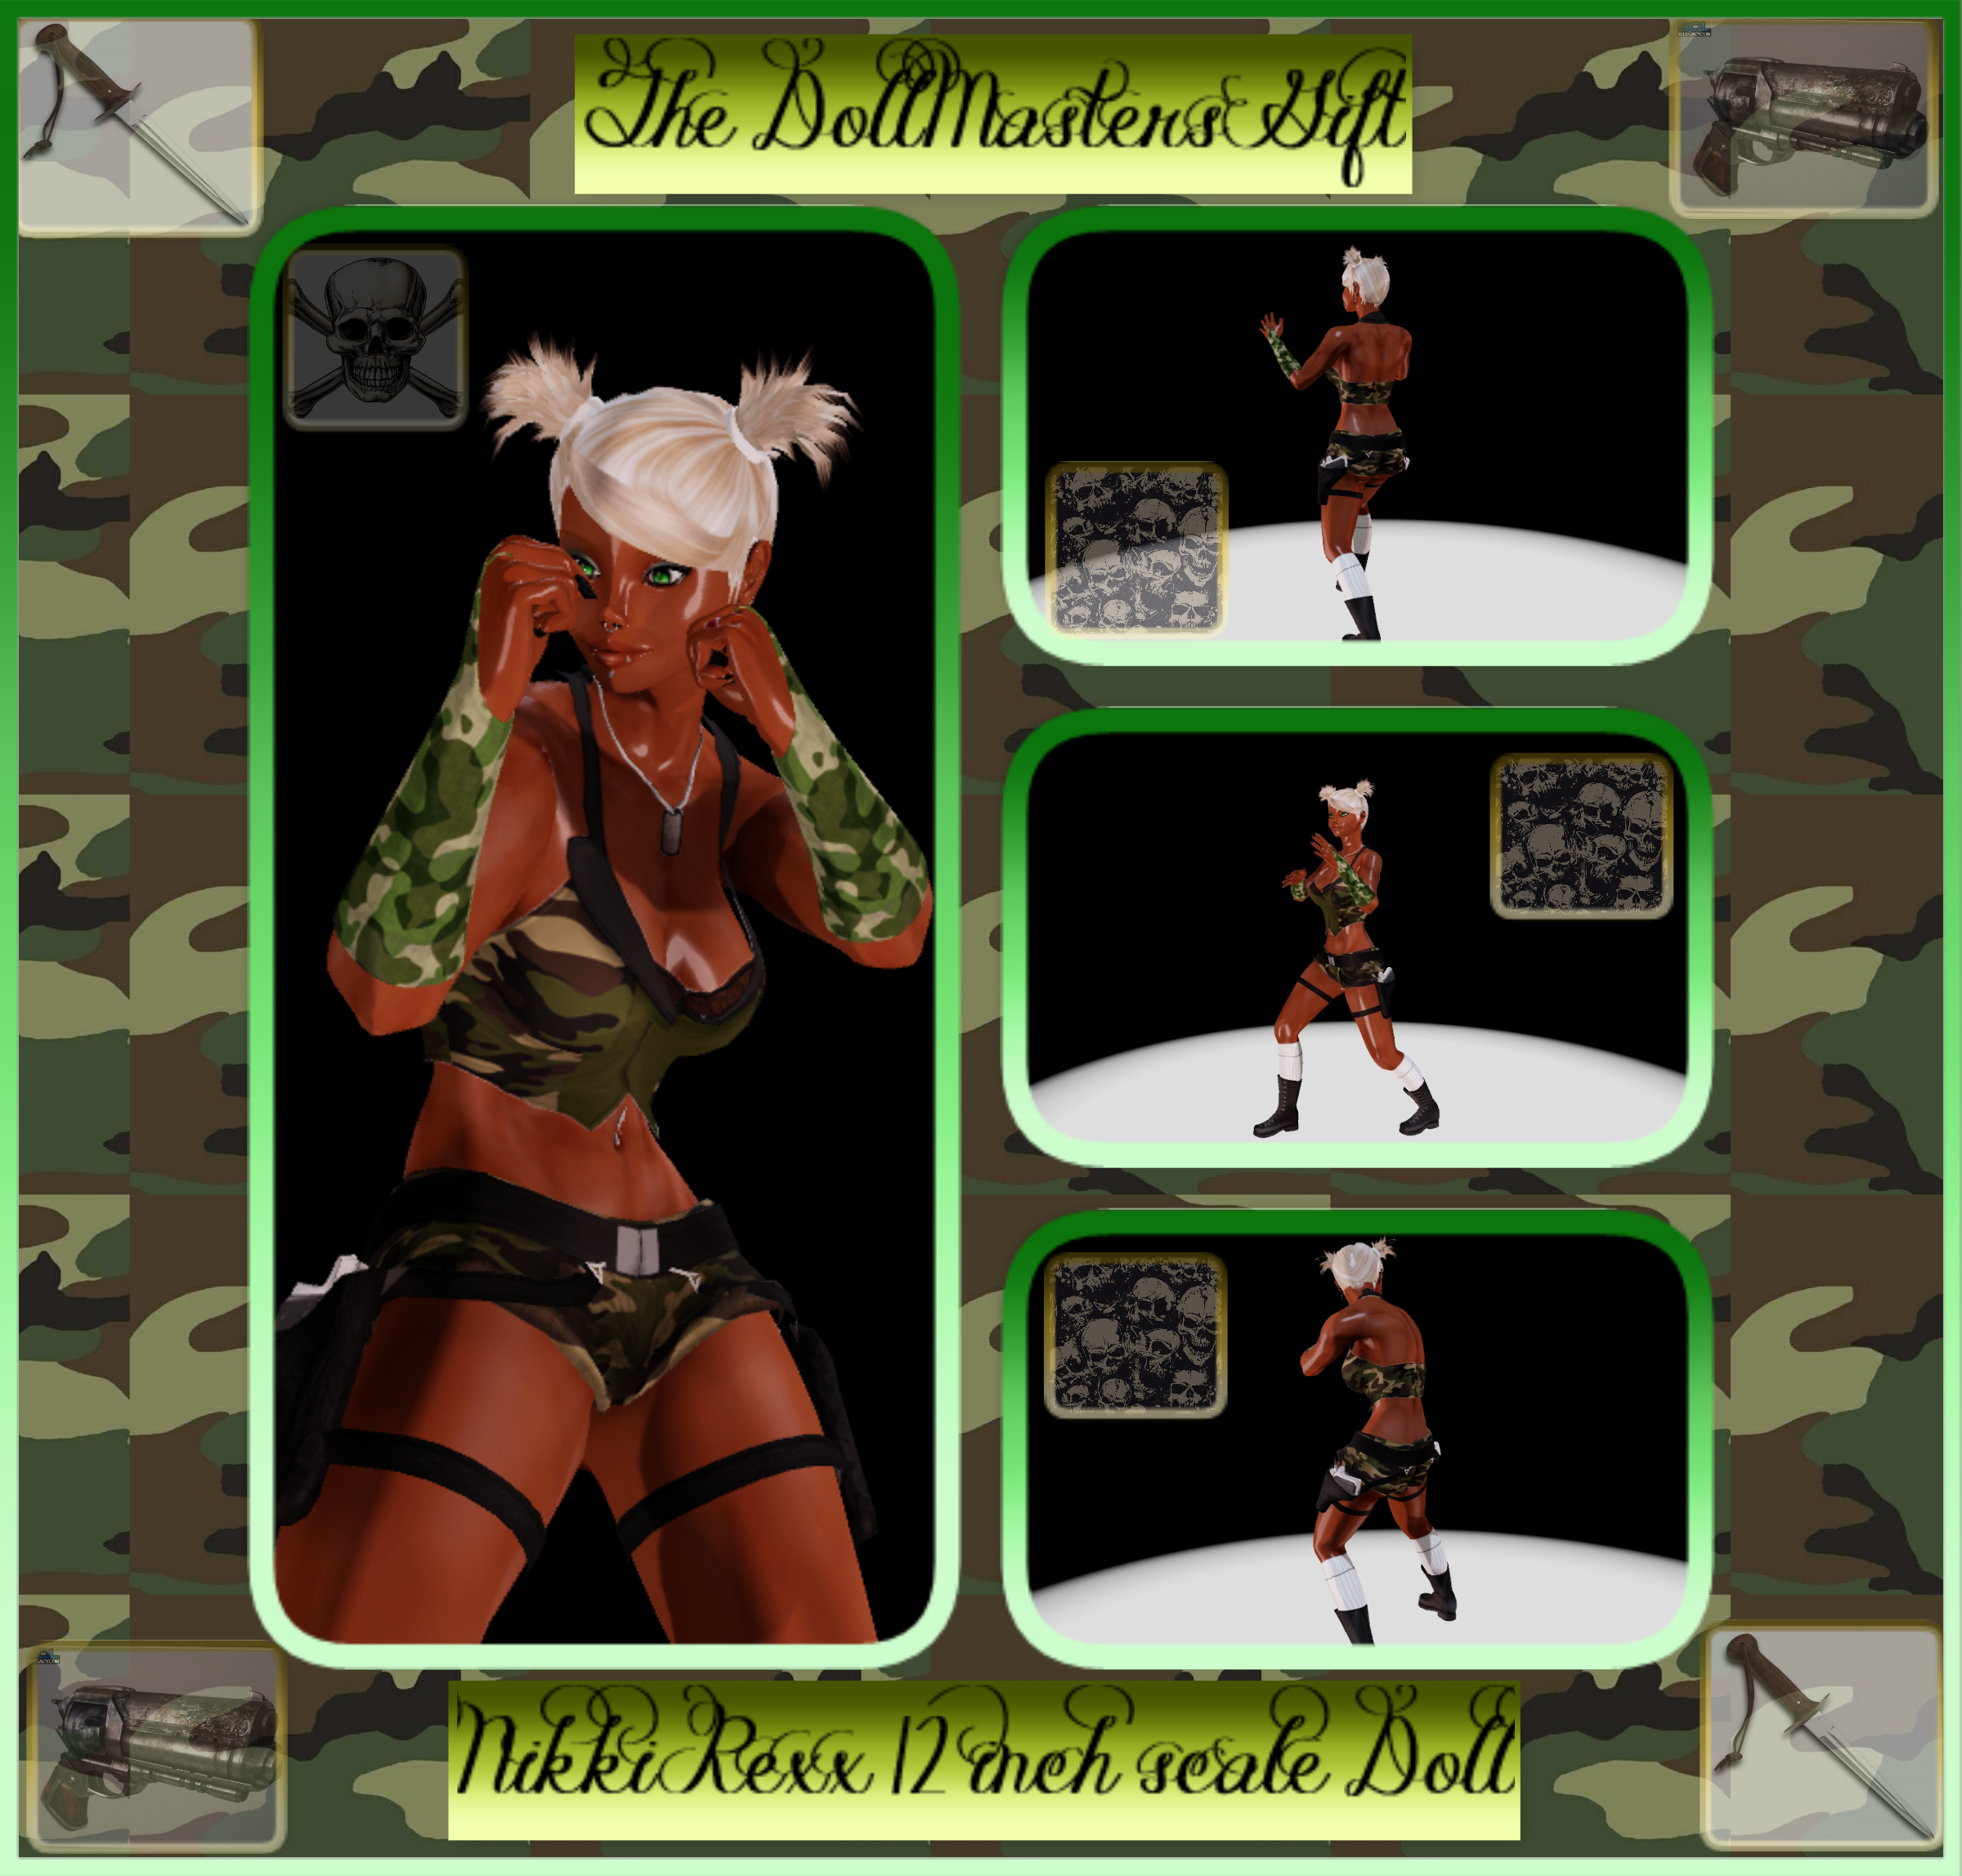 Nikki Rexx 12 inch Doll The Doll Masters Gift